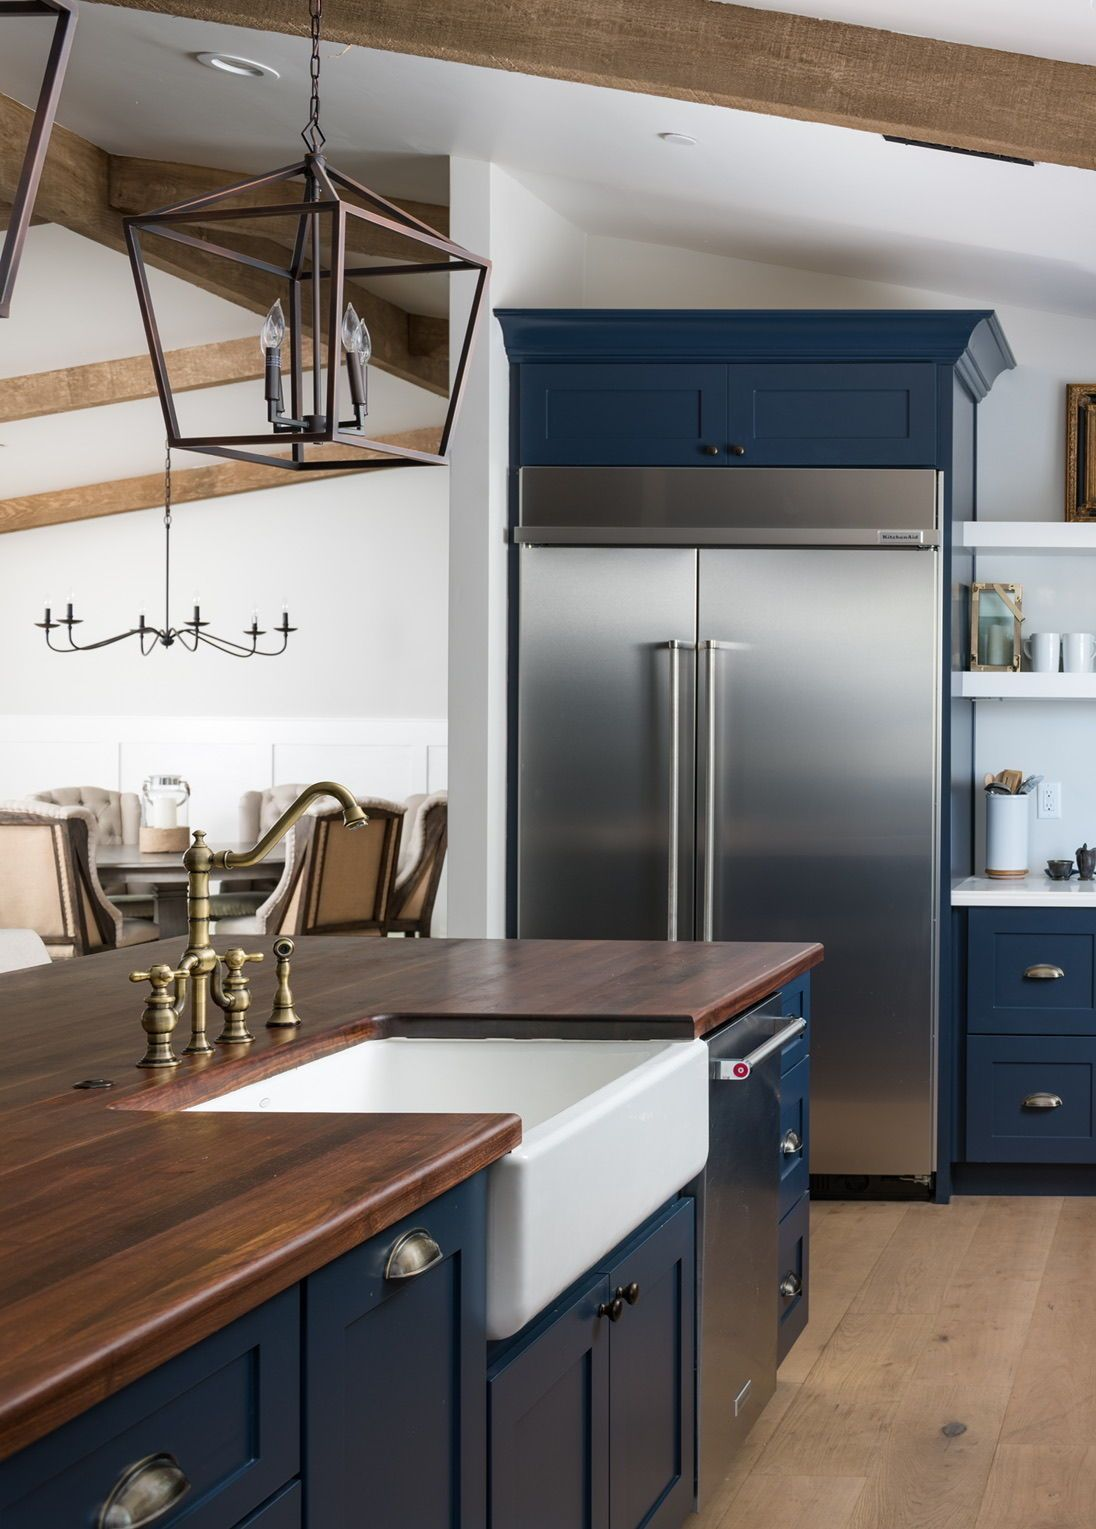 luxury traditional kitchen design open concept navy cabinets with butcher block luxury ki in on kitchen remodel kitchen designs id=48447